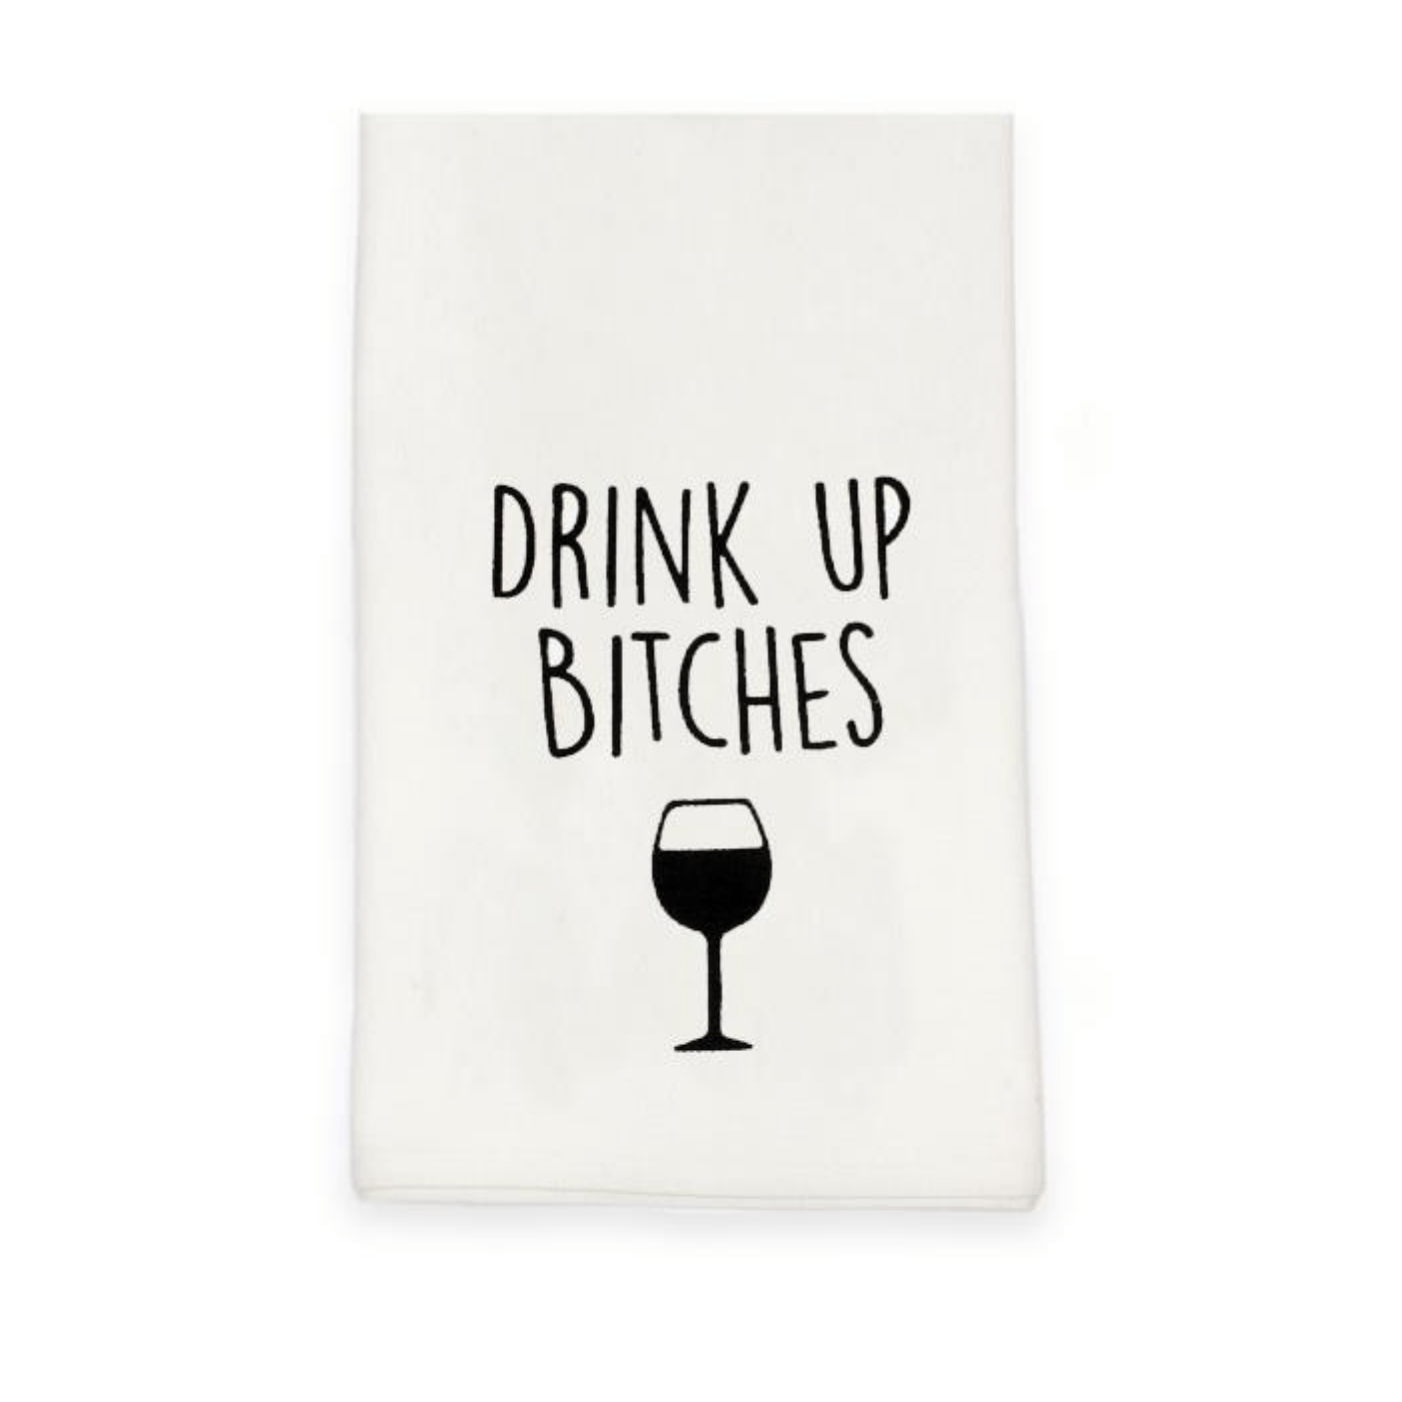 'Drink Up B!tches' Humorous Beige Cotton Tea Towel - Lady of the Lake